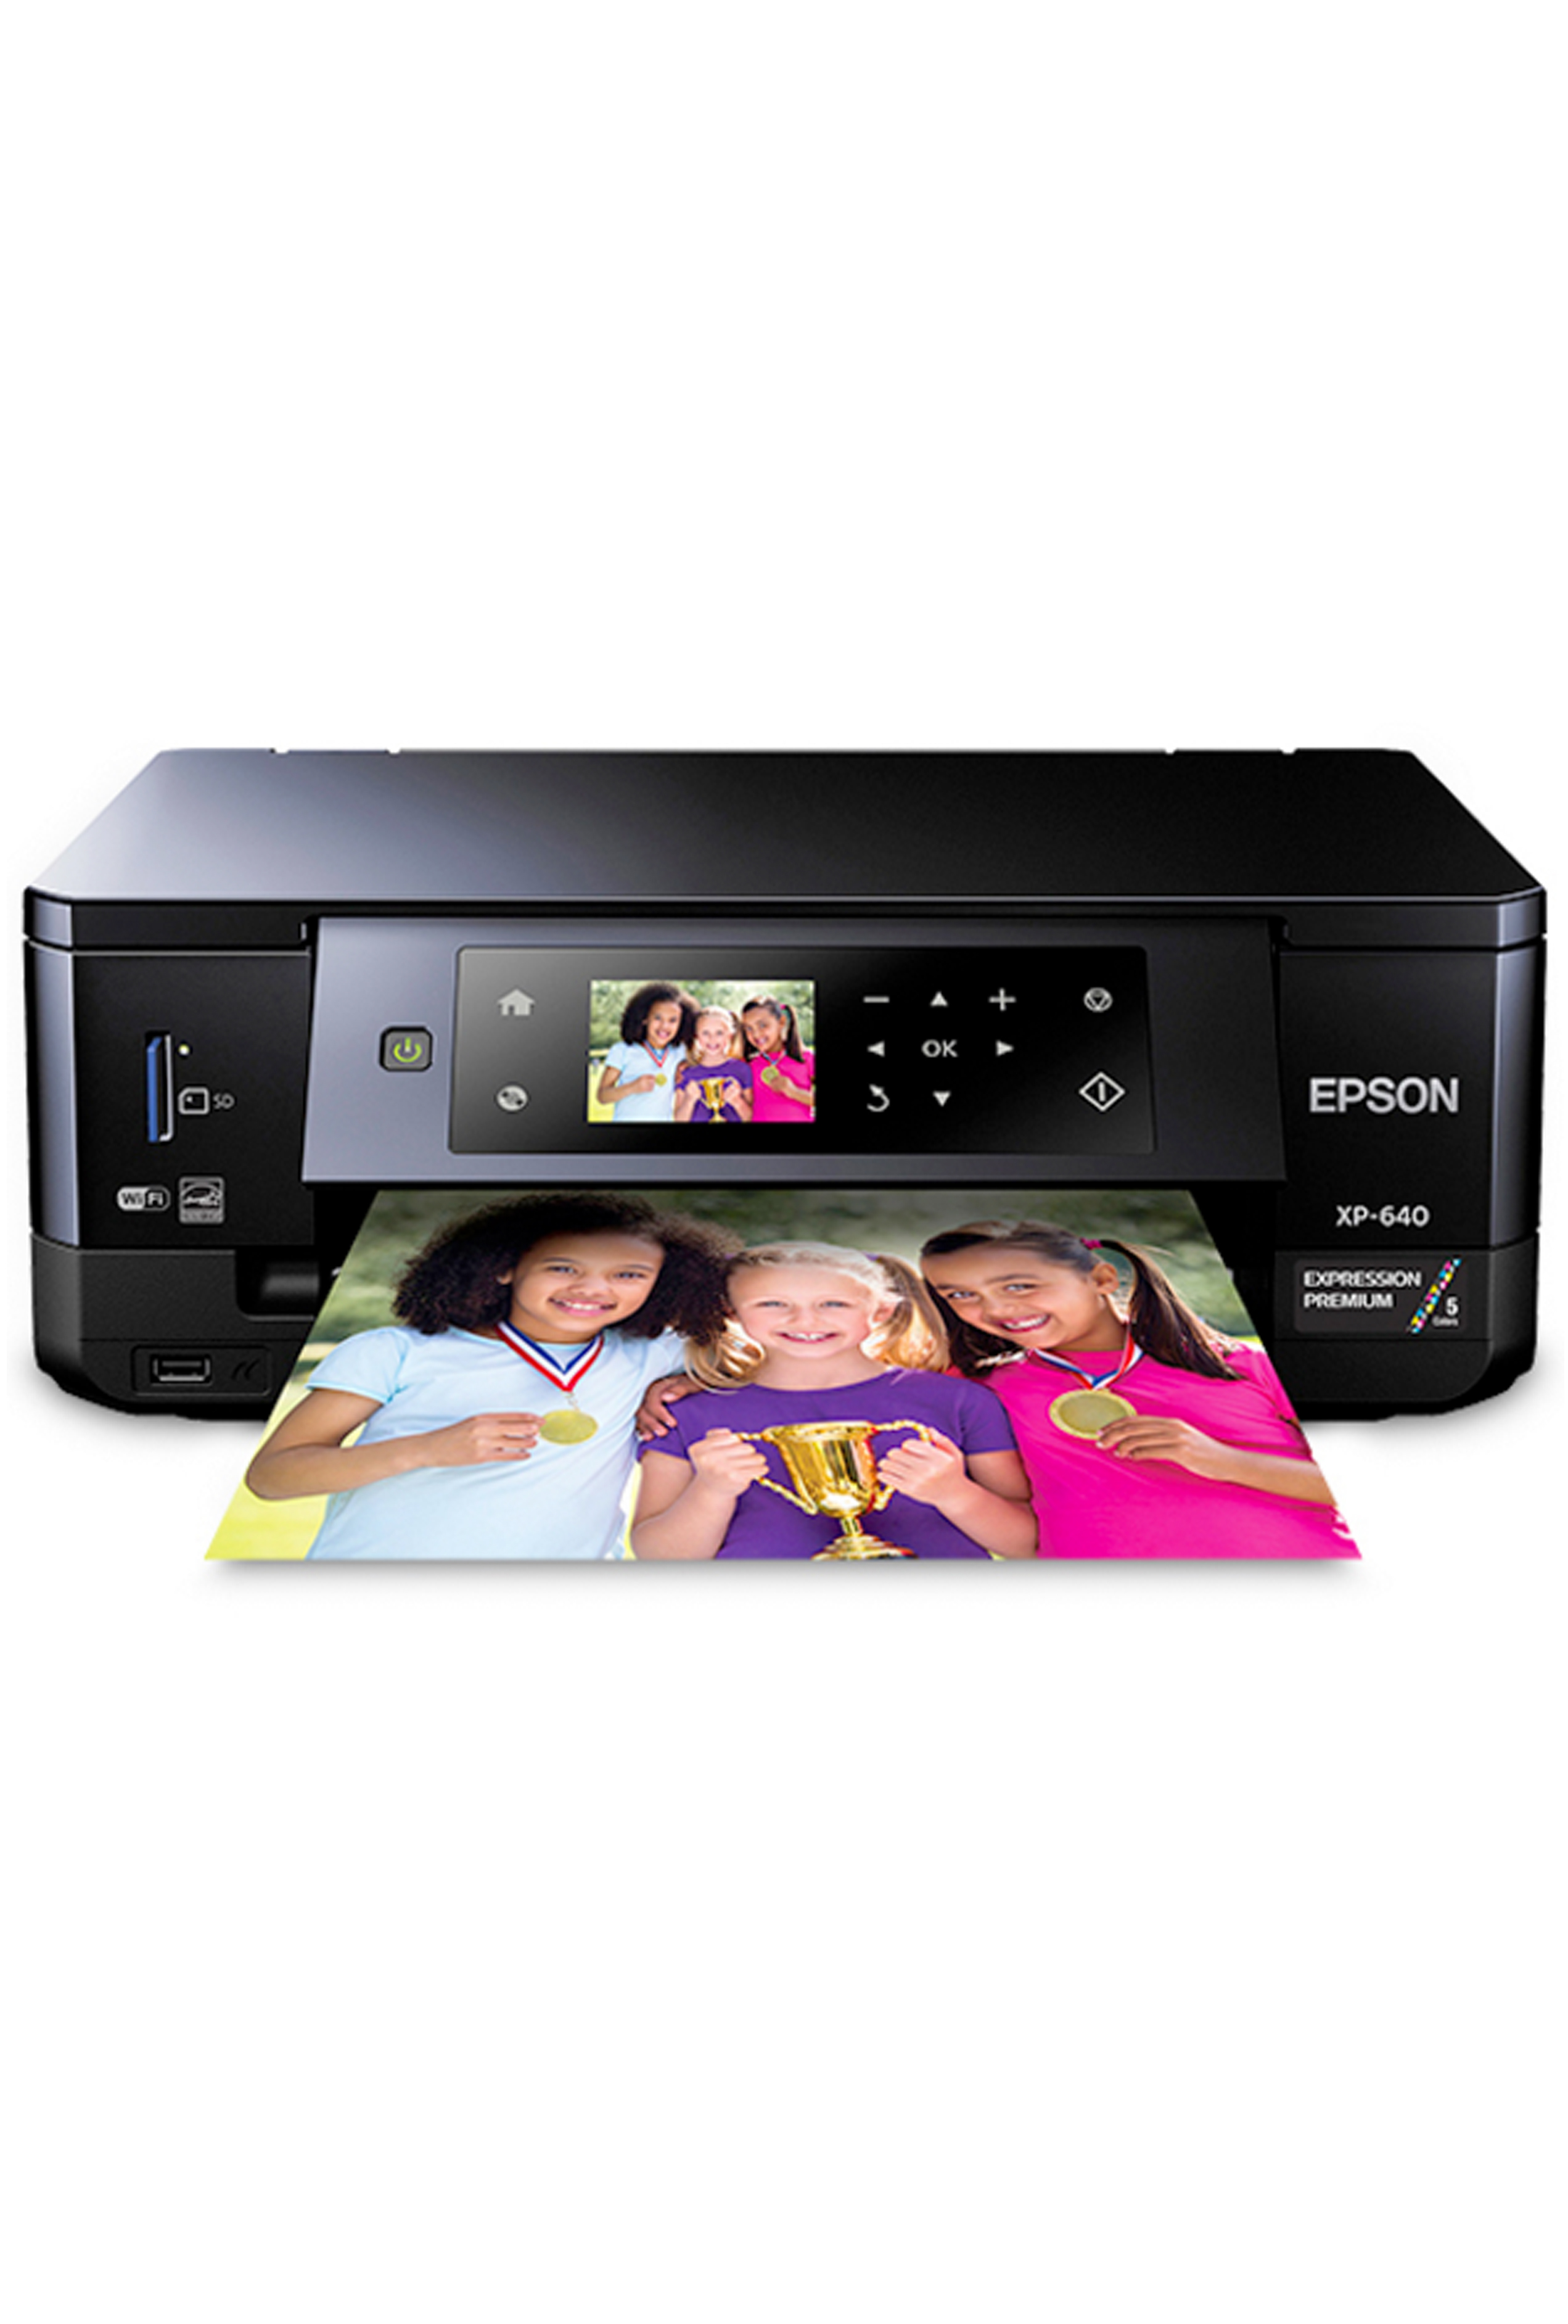 Epson Expression Premium XP-640 Small-in-One All-in-One...